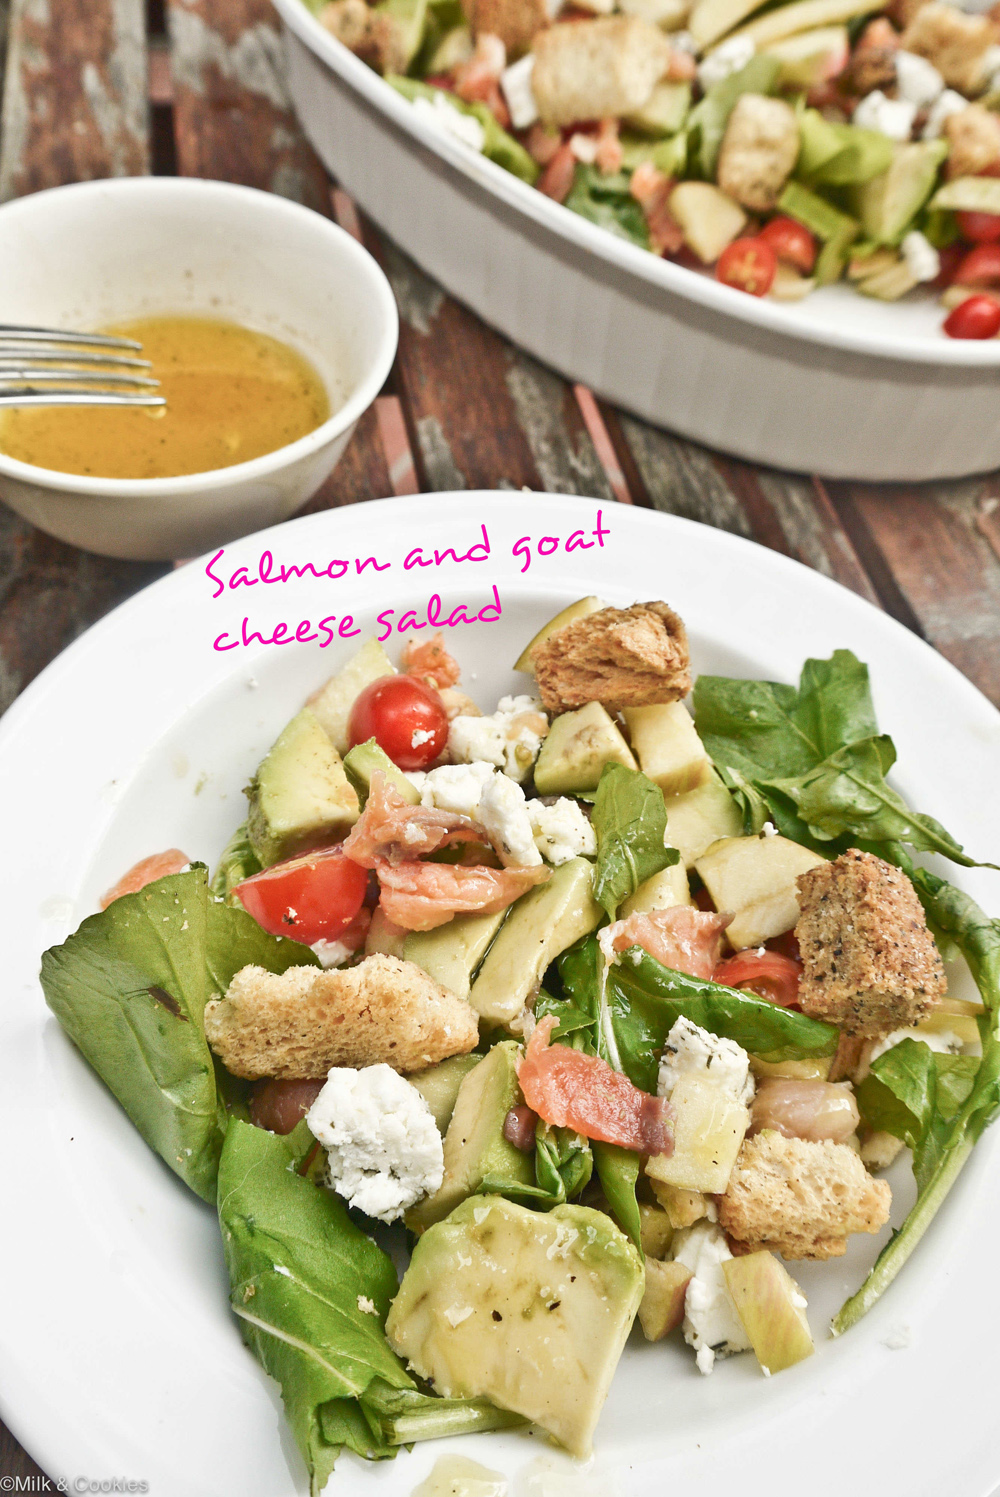 Salmon and Goats Cheese Summer Salad Recipe |Milk and Cookies